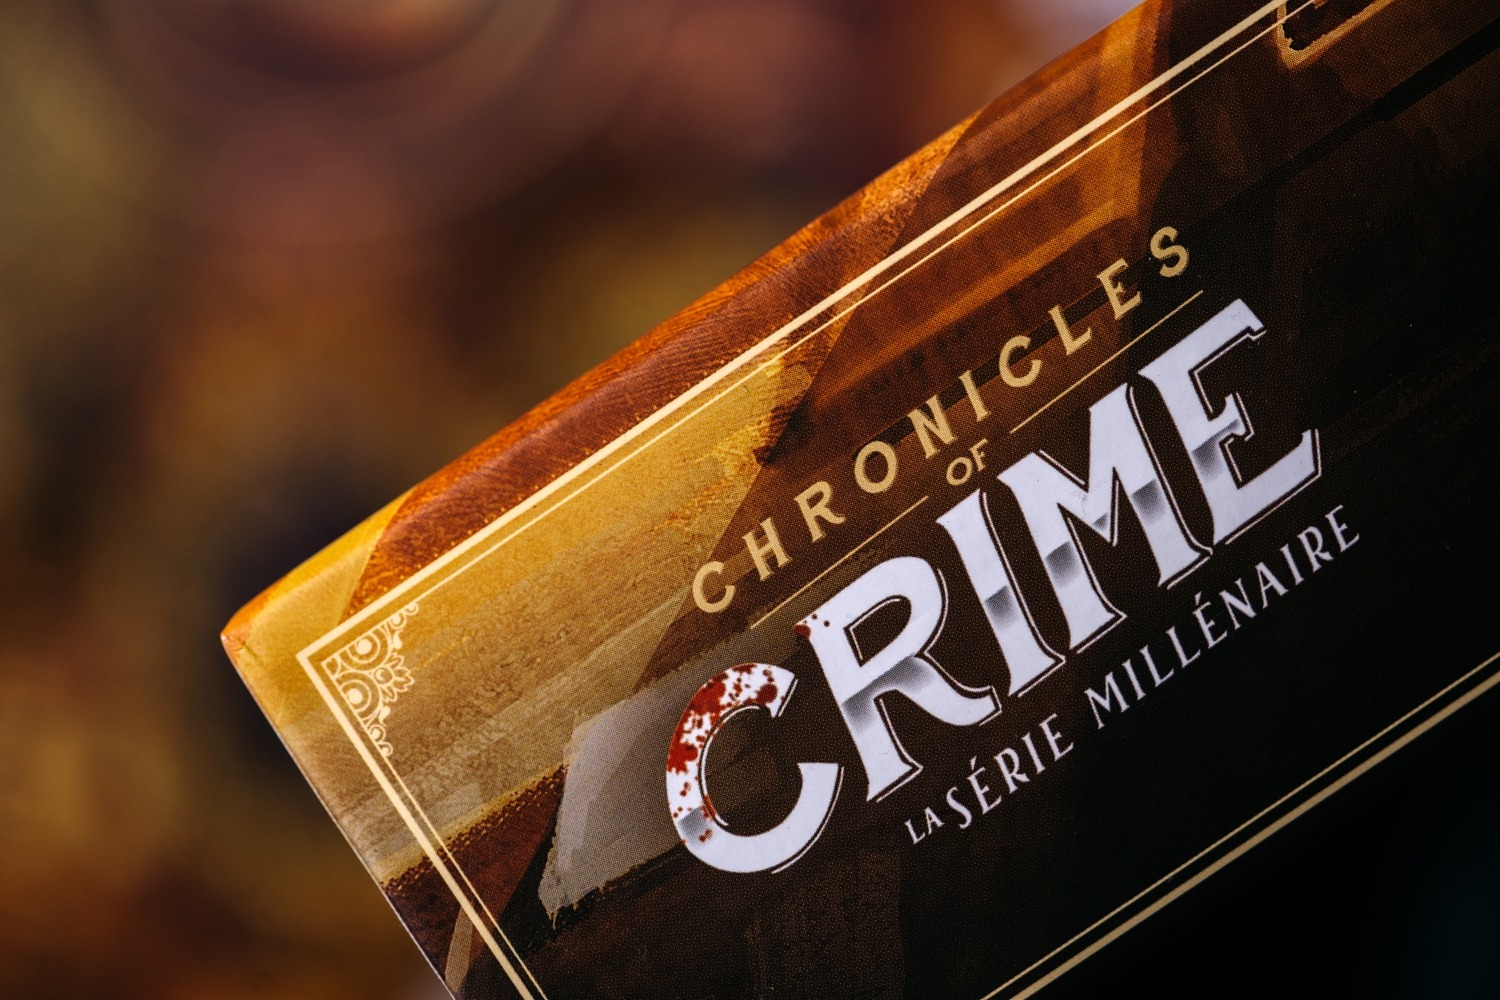 Chronicles of crime 1900 Millenium Lucky duck games boardgame